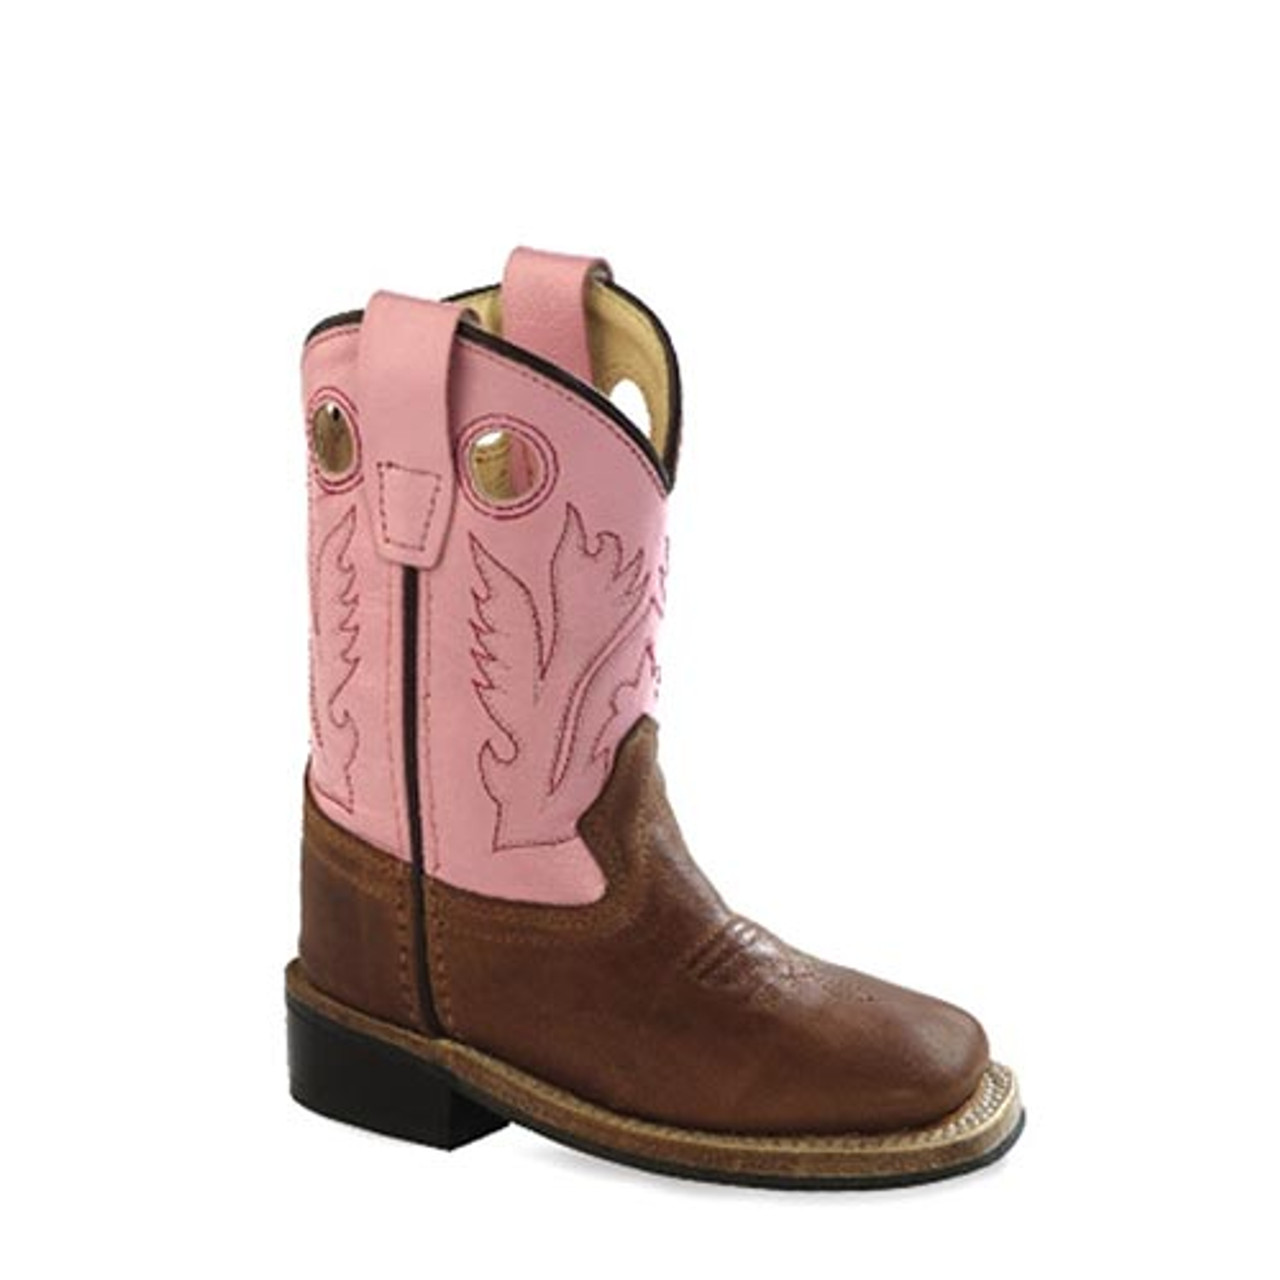 1f9df6465a0 Jama Old West - Toddler - Girls' Pink Cowgirl Boots - Square Toe